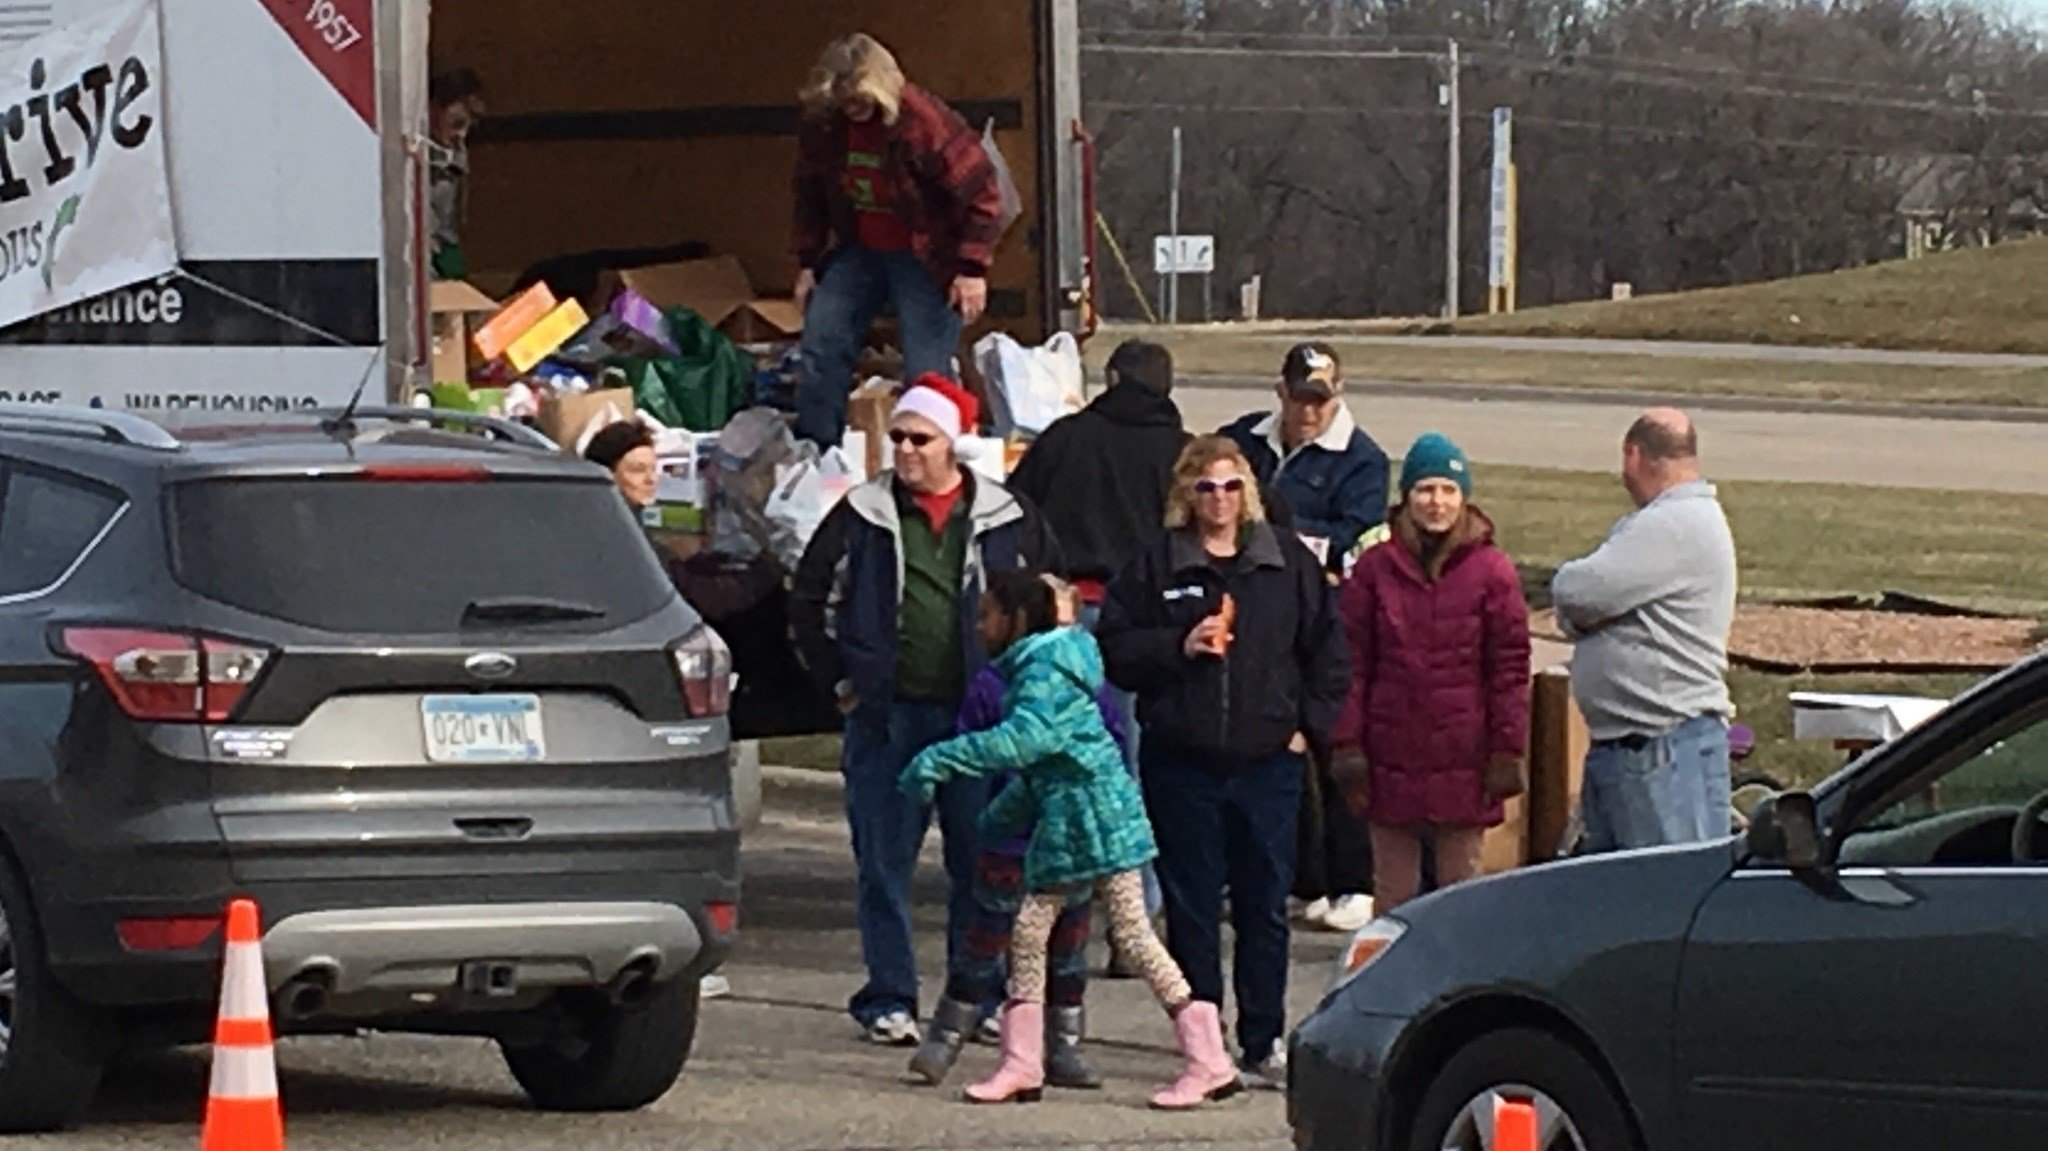 Jess Abrahamson and daughter Bereket were among those helping greet people dropping off toys